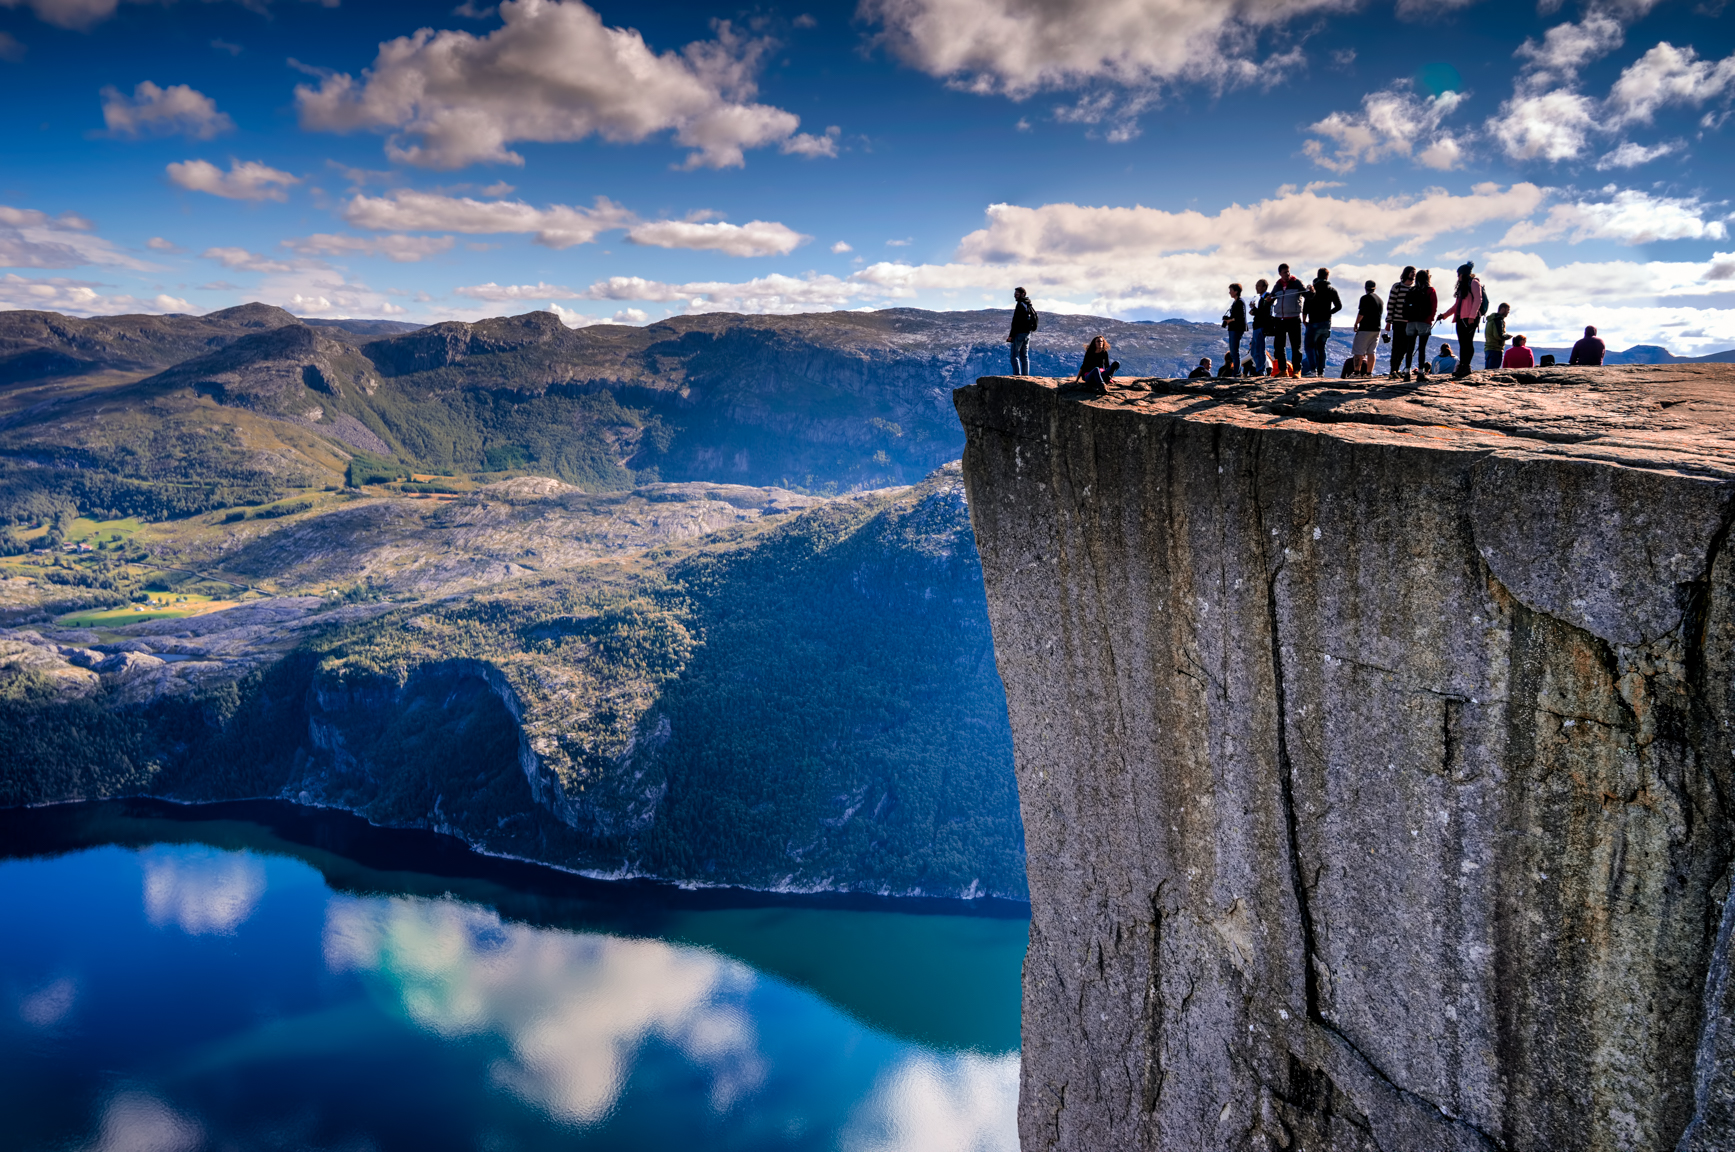 3 exposure HDR, f/13, tripod, ISO 100, 60mm -- Pulpit Rock, Norway